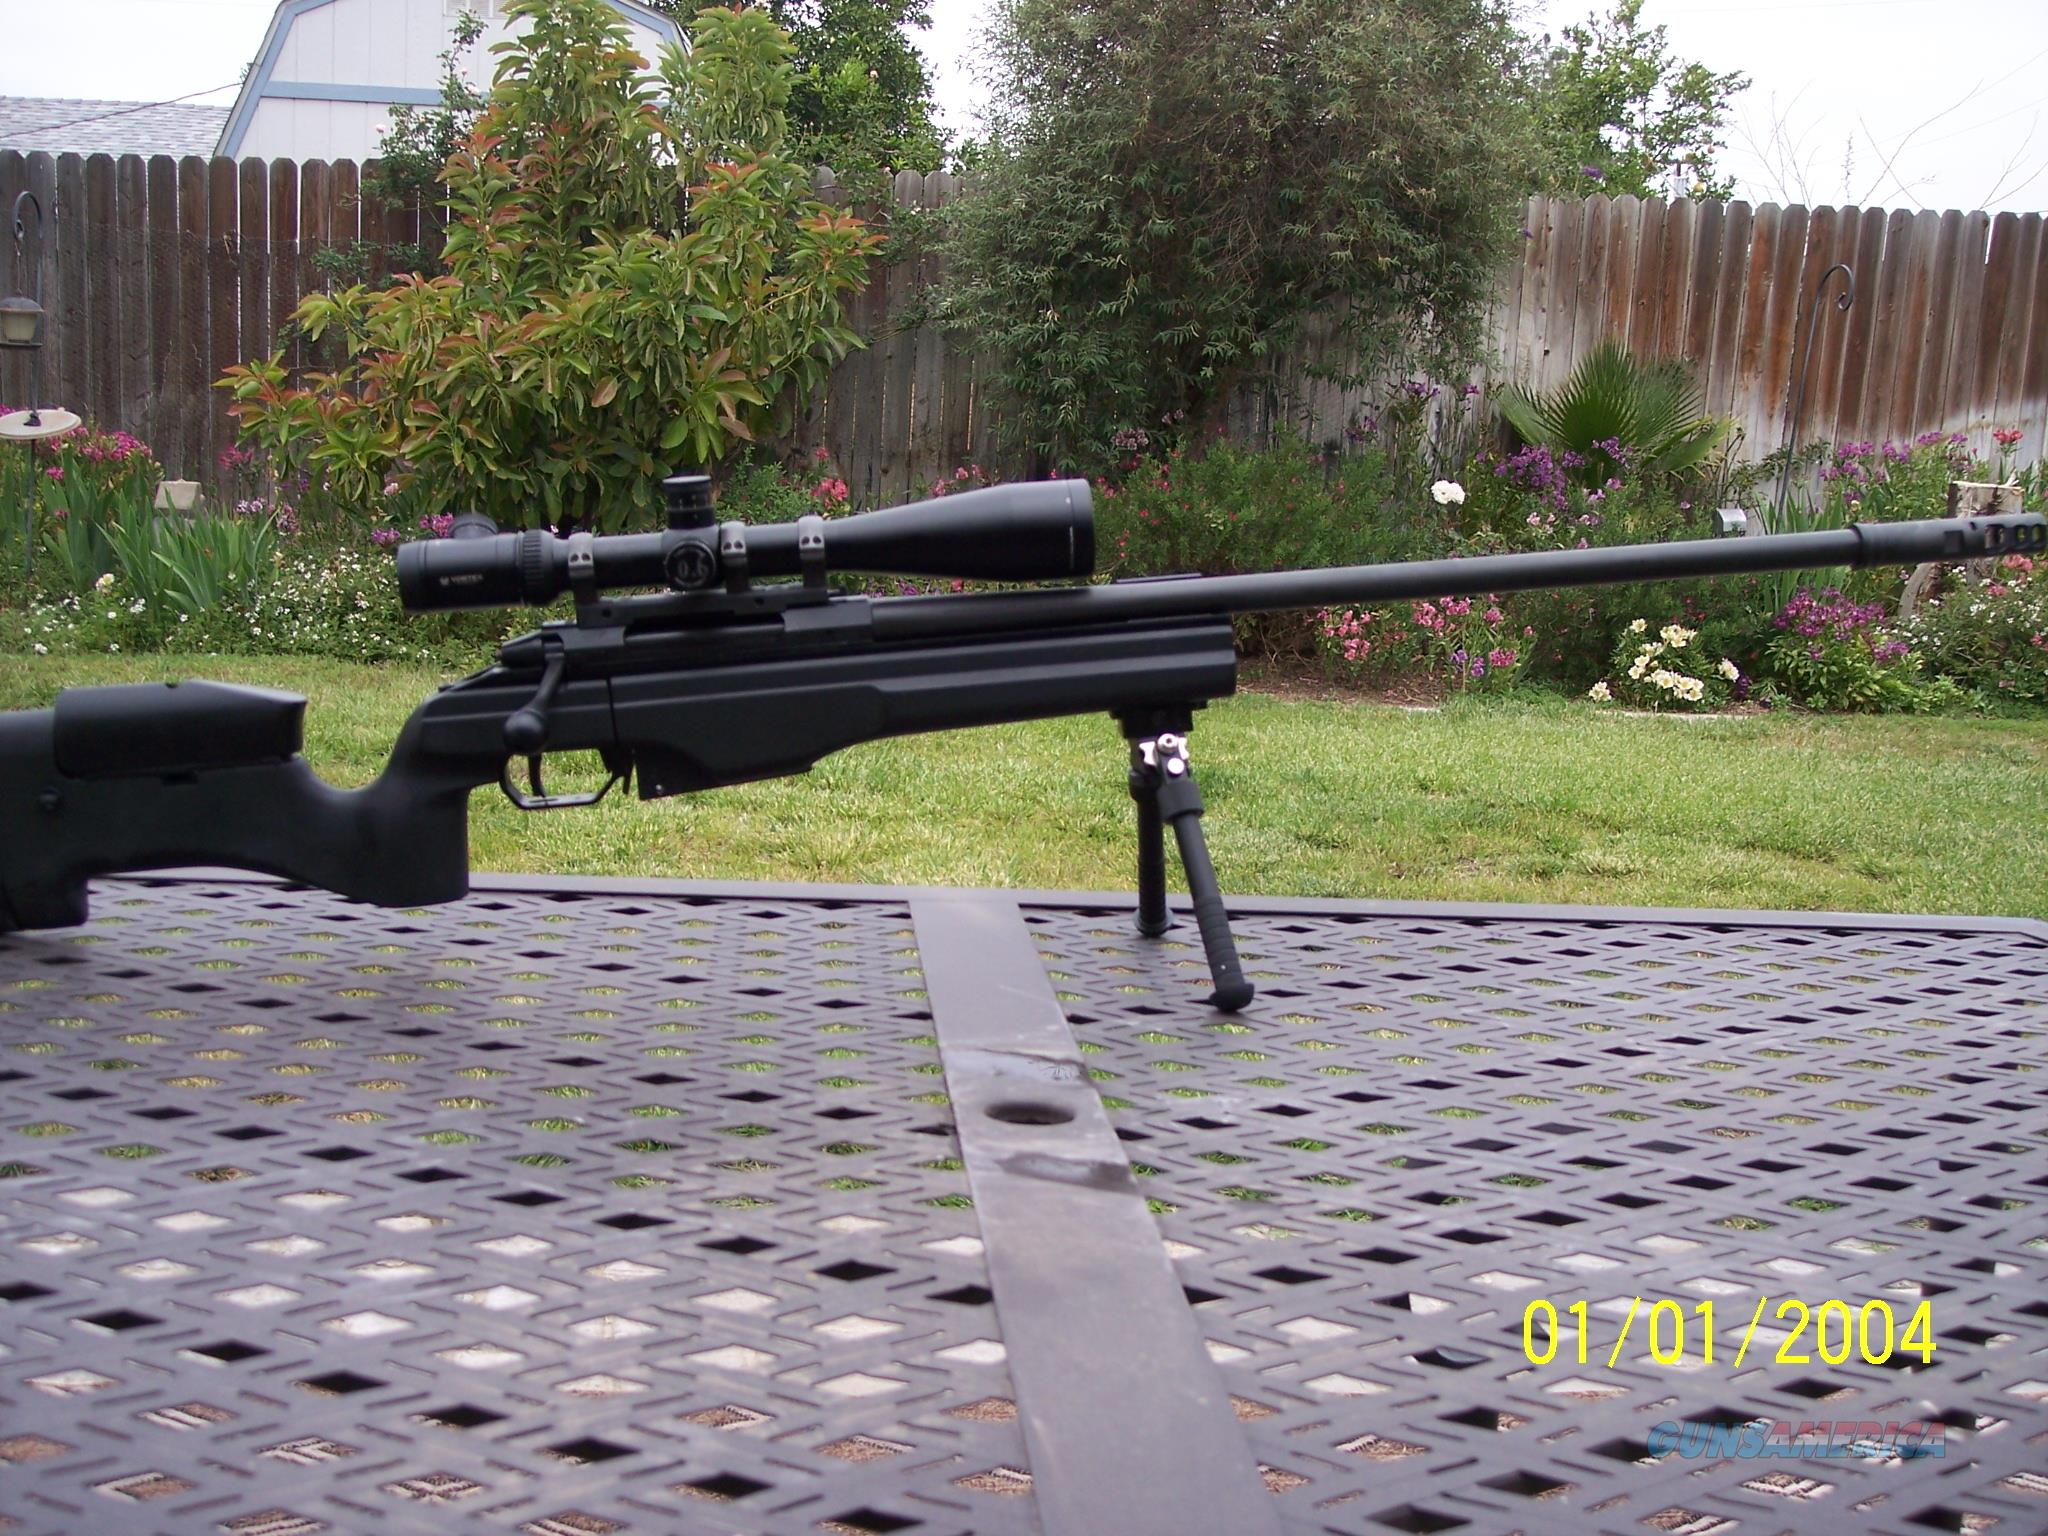 SAKO TRG-42 338 Lapua Magnum USED  Guns > Rifles > Sako Rifles > Other Bolt Action